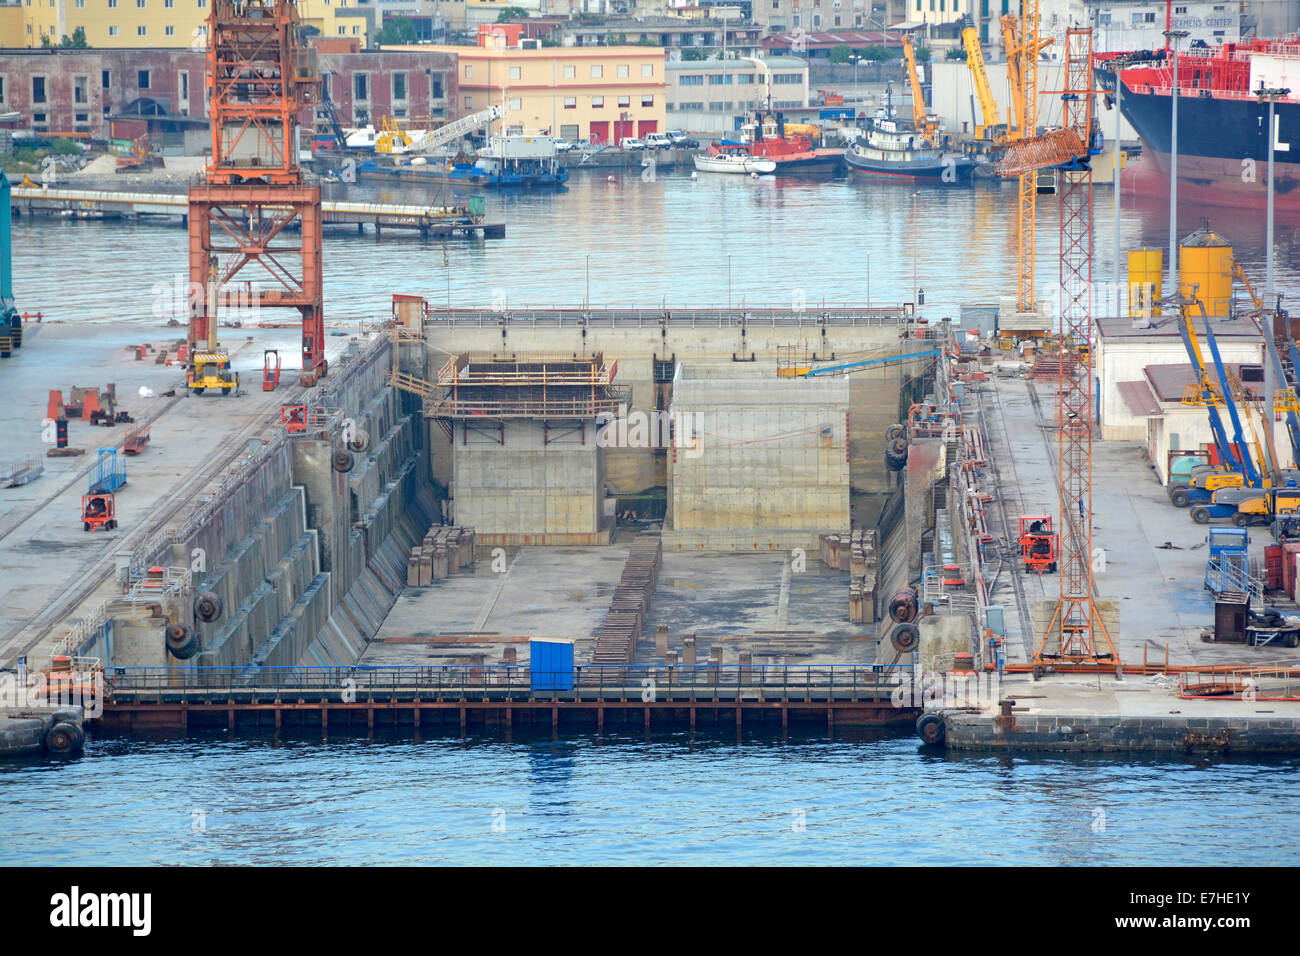 Port of Naples early evening view of empty dry dock after workers had left for the day - Stock Image